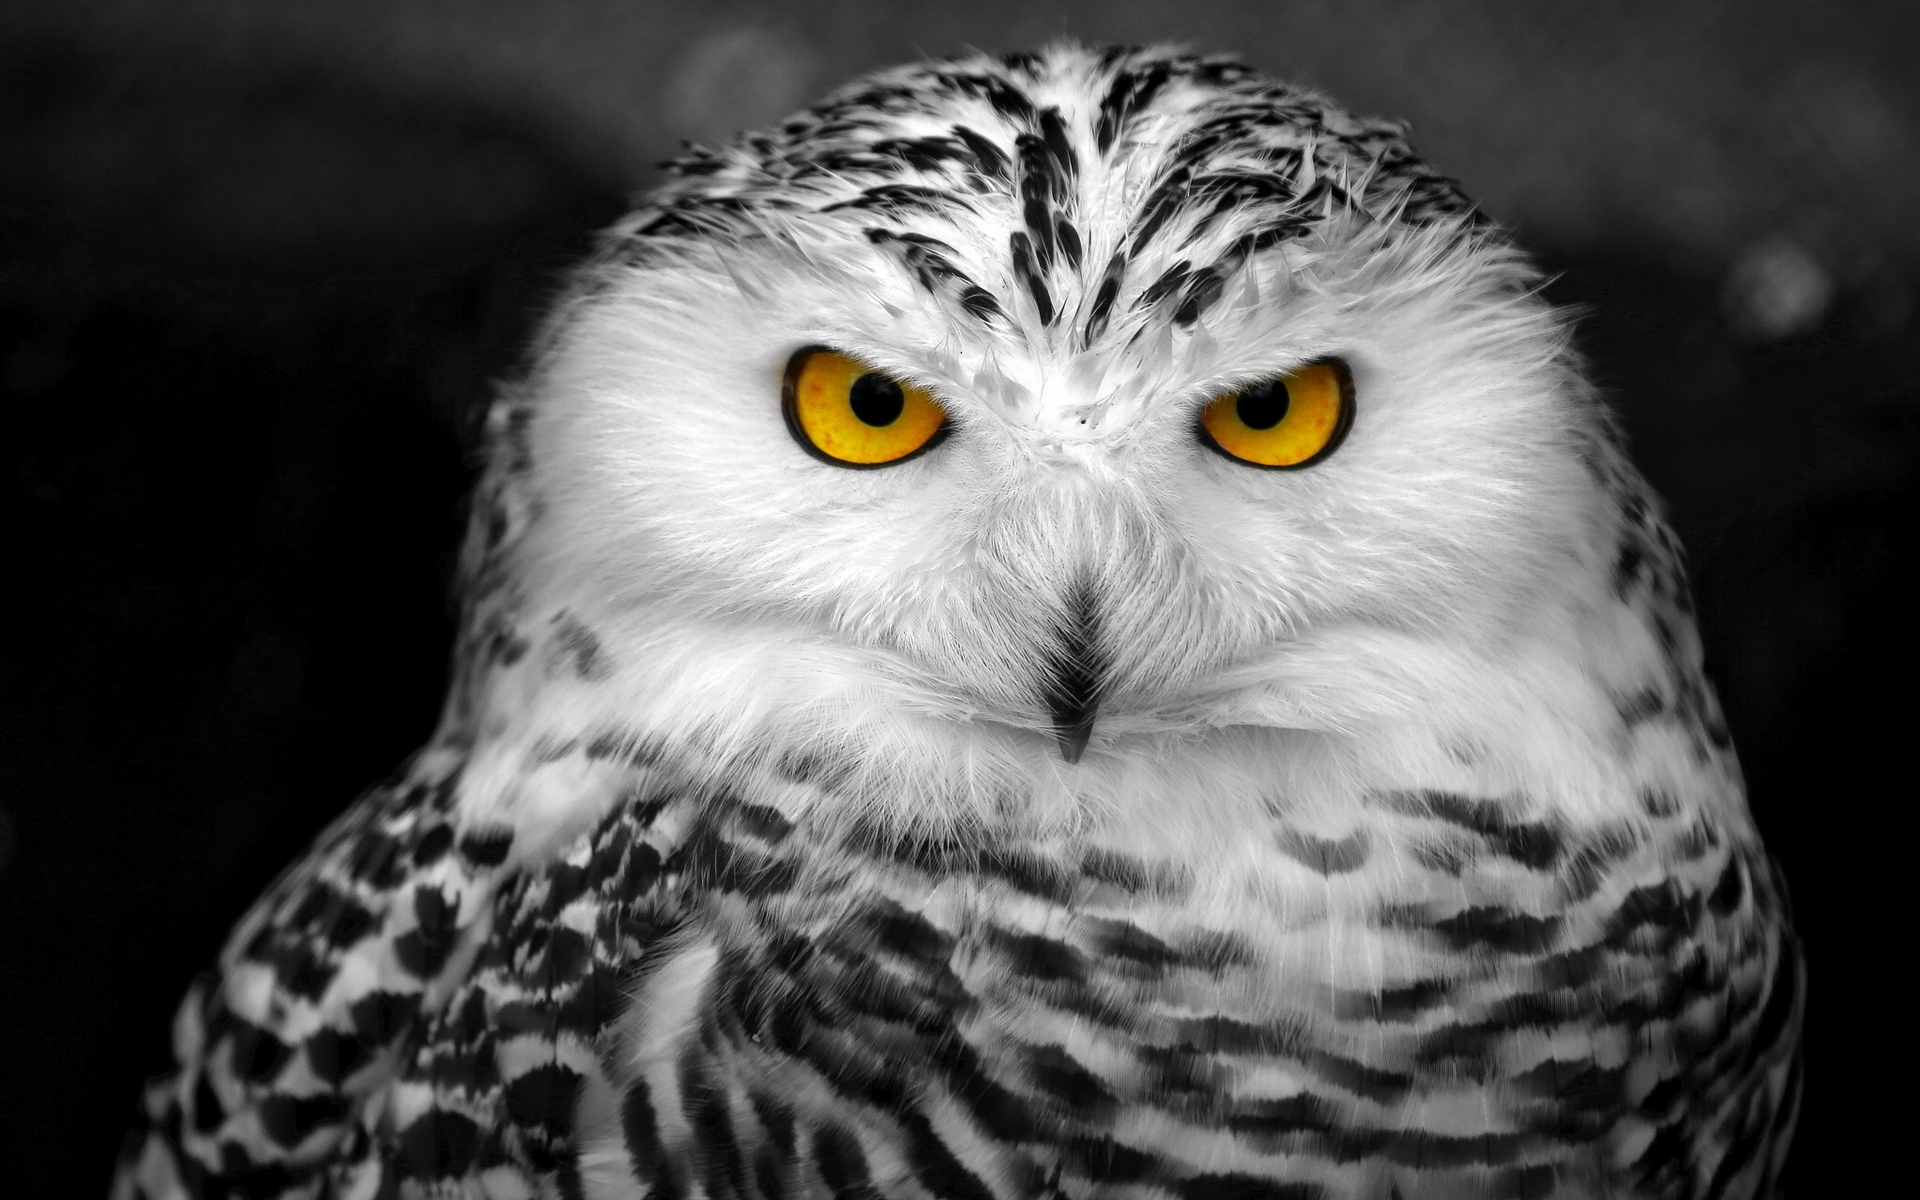 Snowy Owl Wallpaper 1920x1200 59095